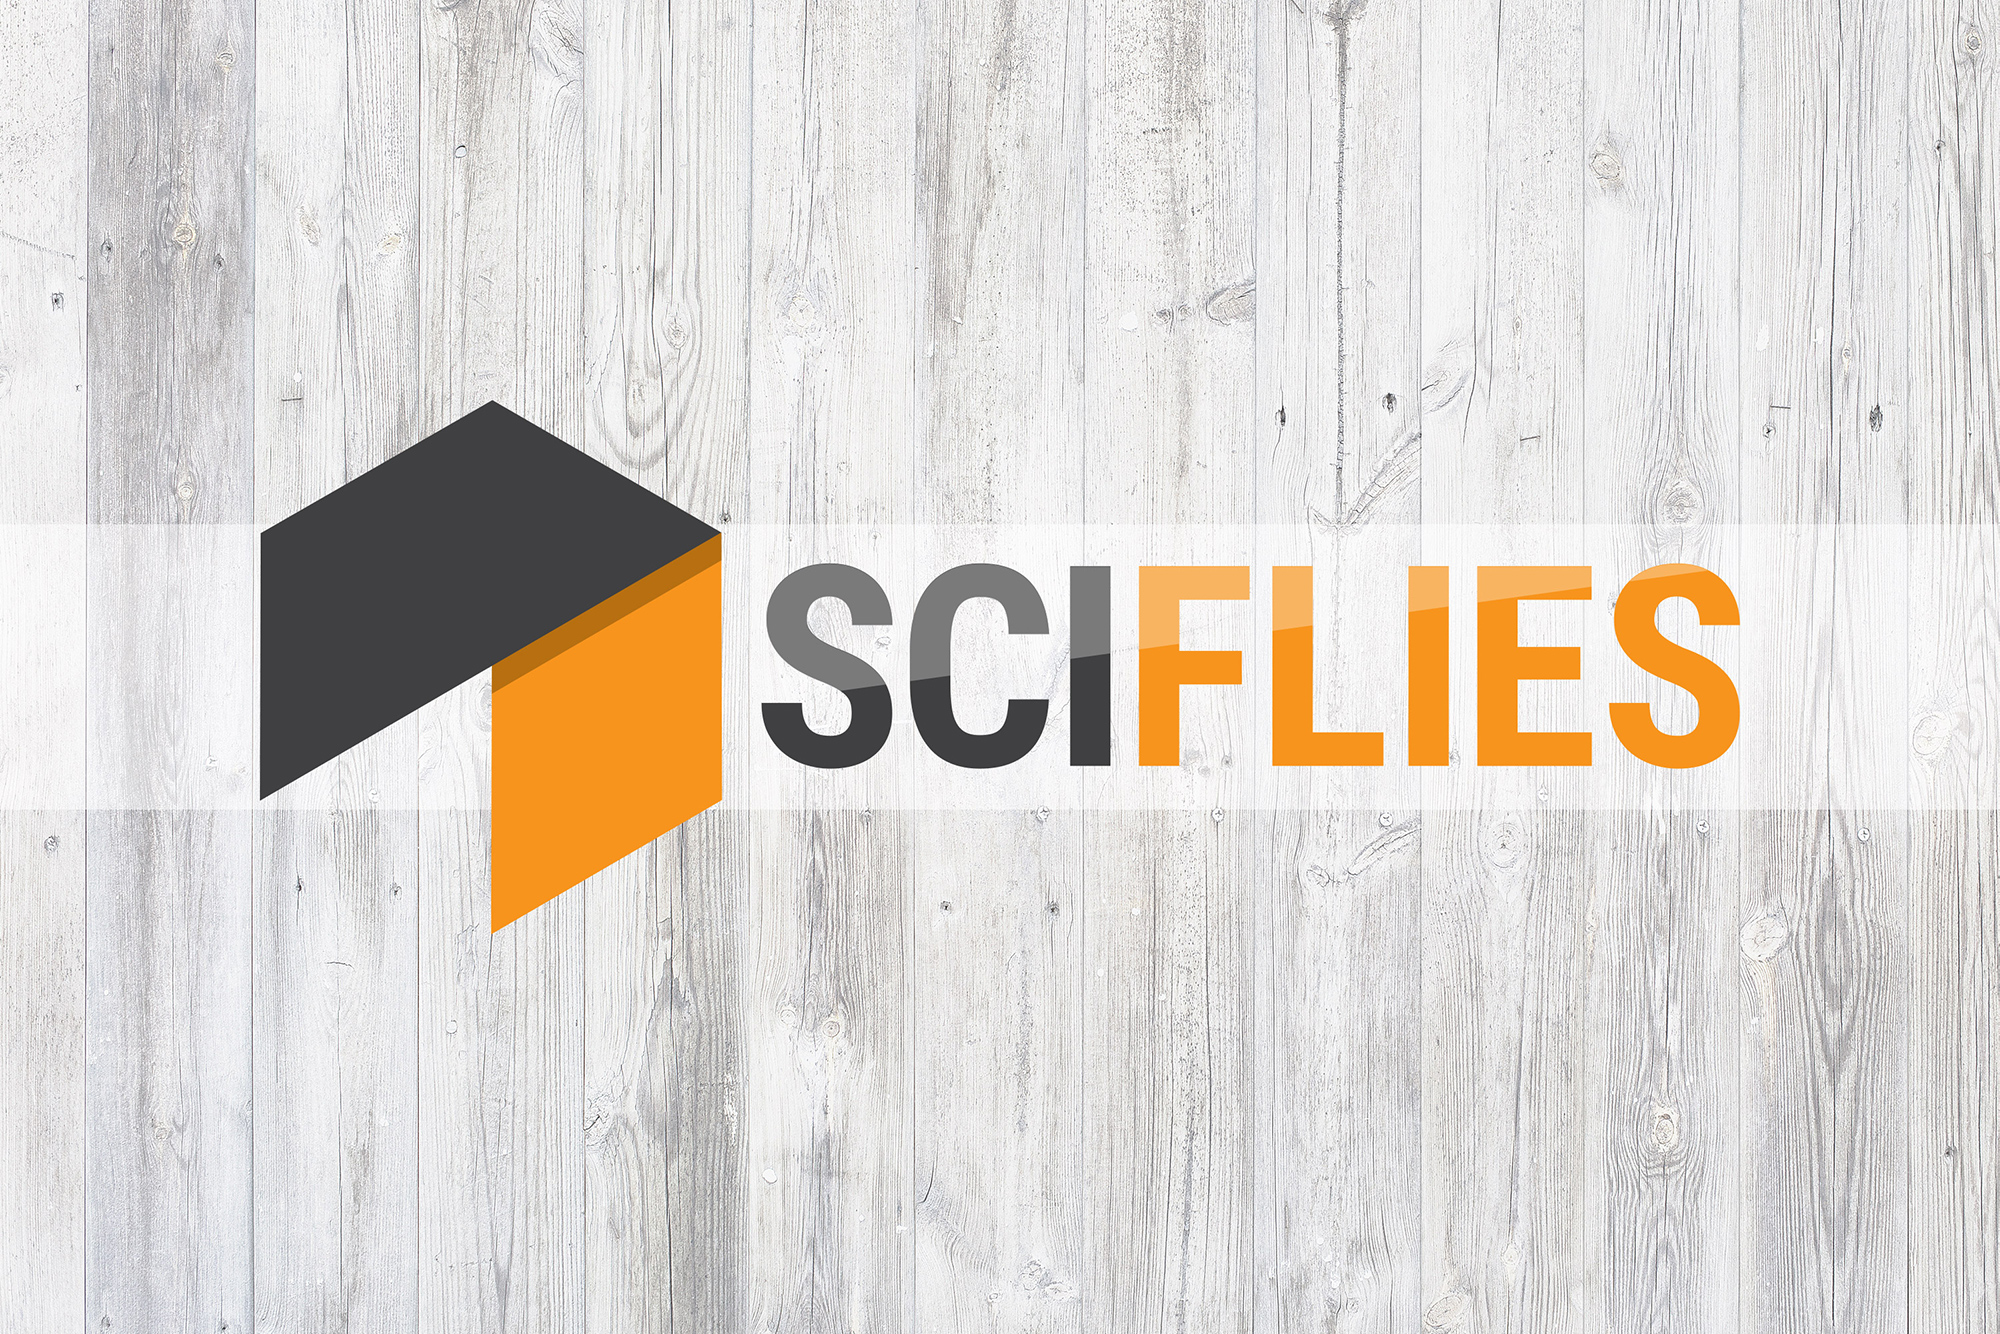 """The final logo, in bright orange and deep grey, with the word """"SCIFLIES"""" next to it in all caps. The logo is laid on top of a light wood background."""